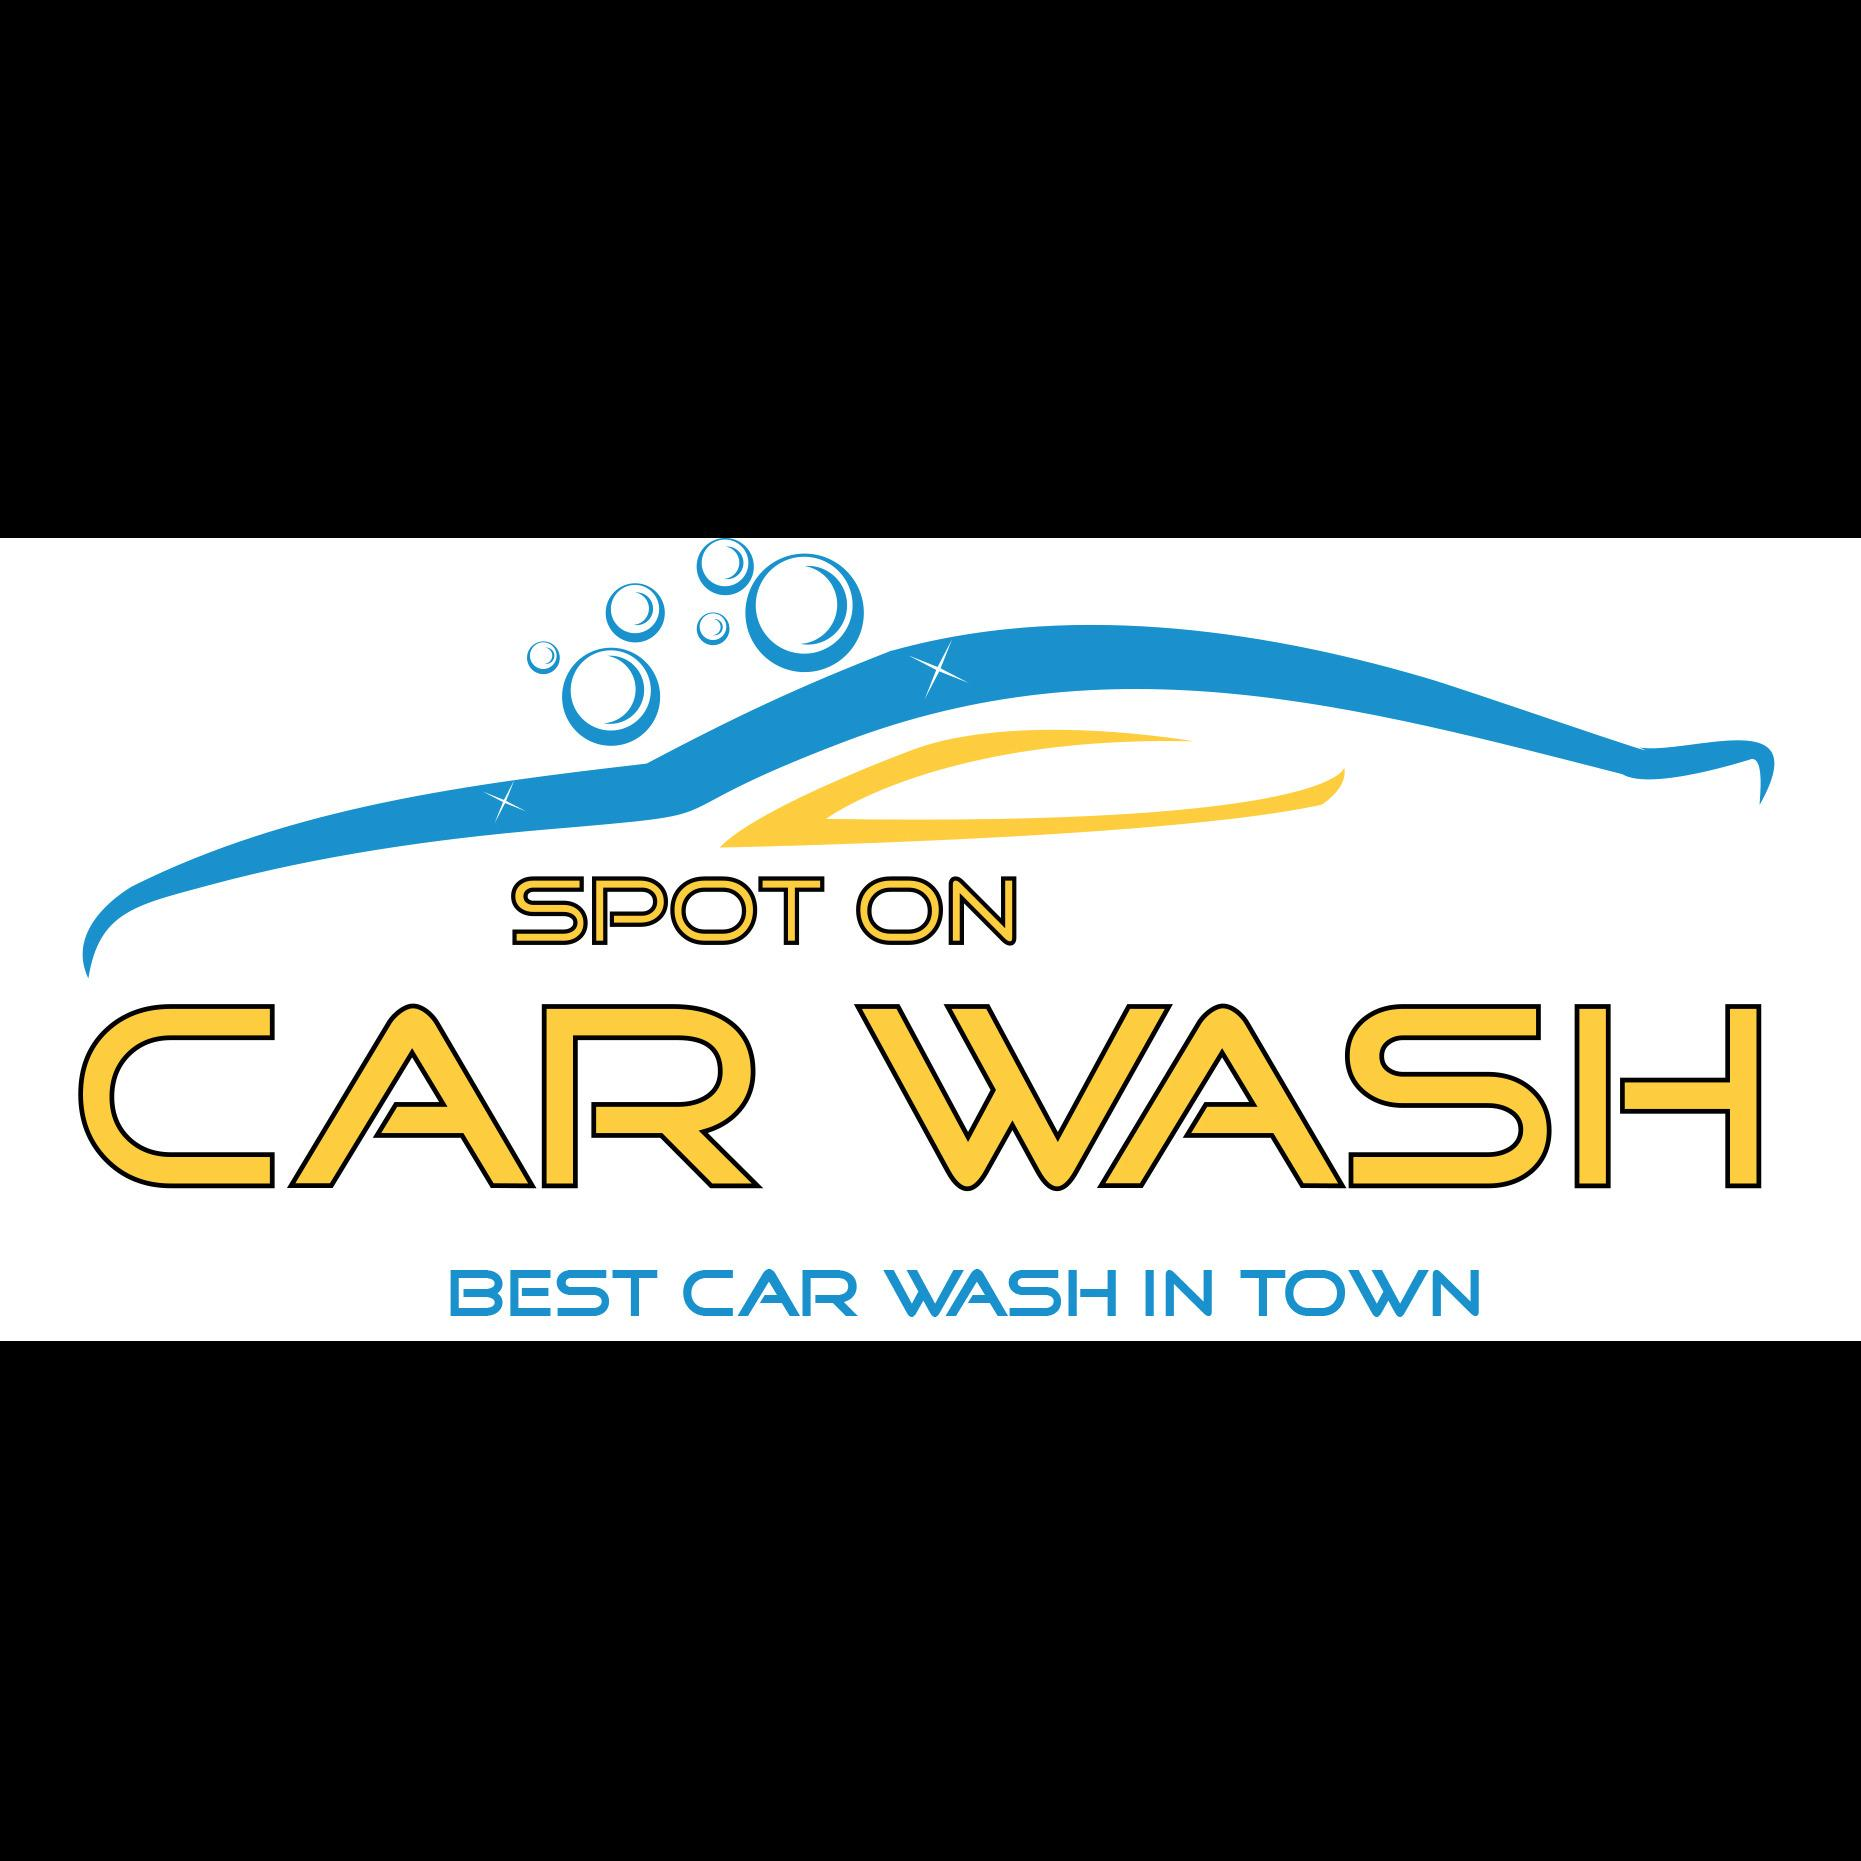 Spot on Car Wash & Auto Spa - Fort Myers, FL - General Auto Repair & Service